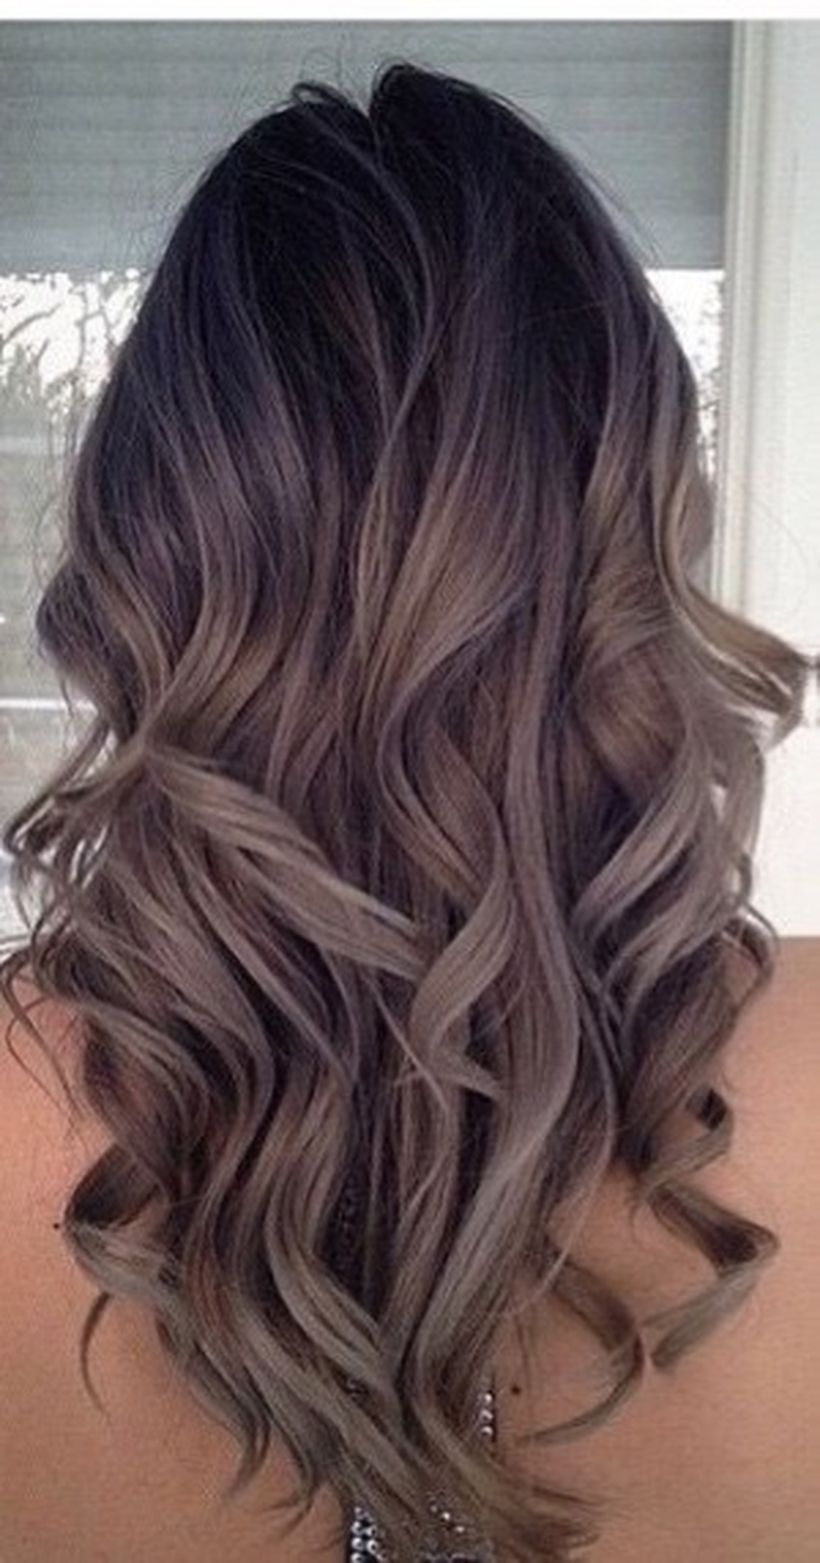 Best hair color ideas in 2017 58